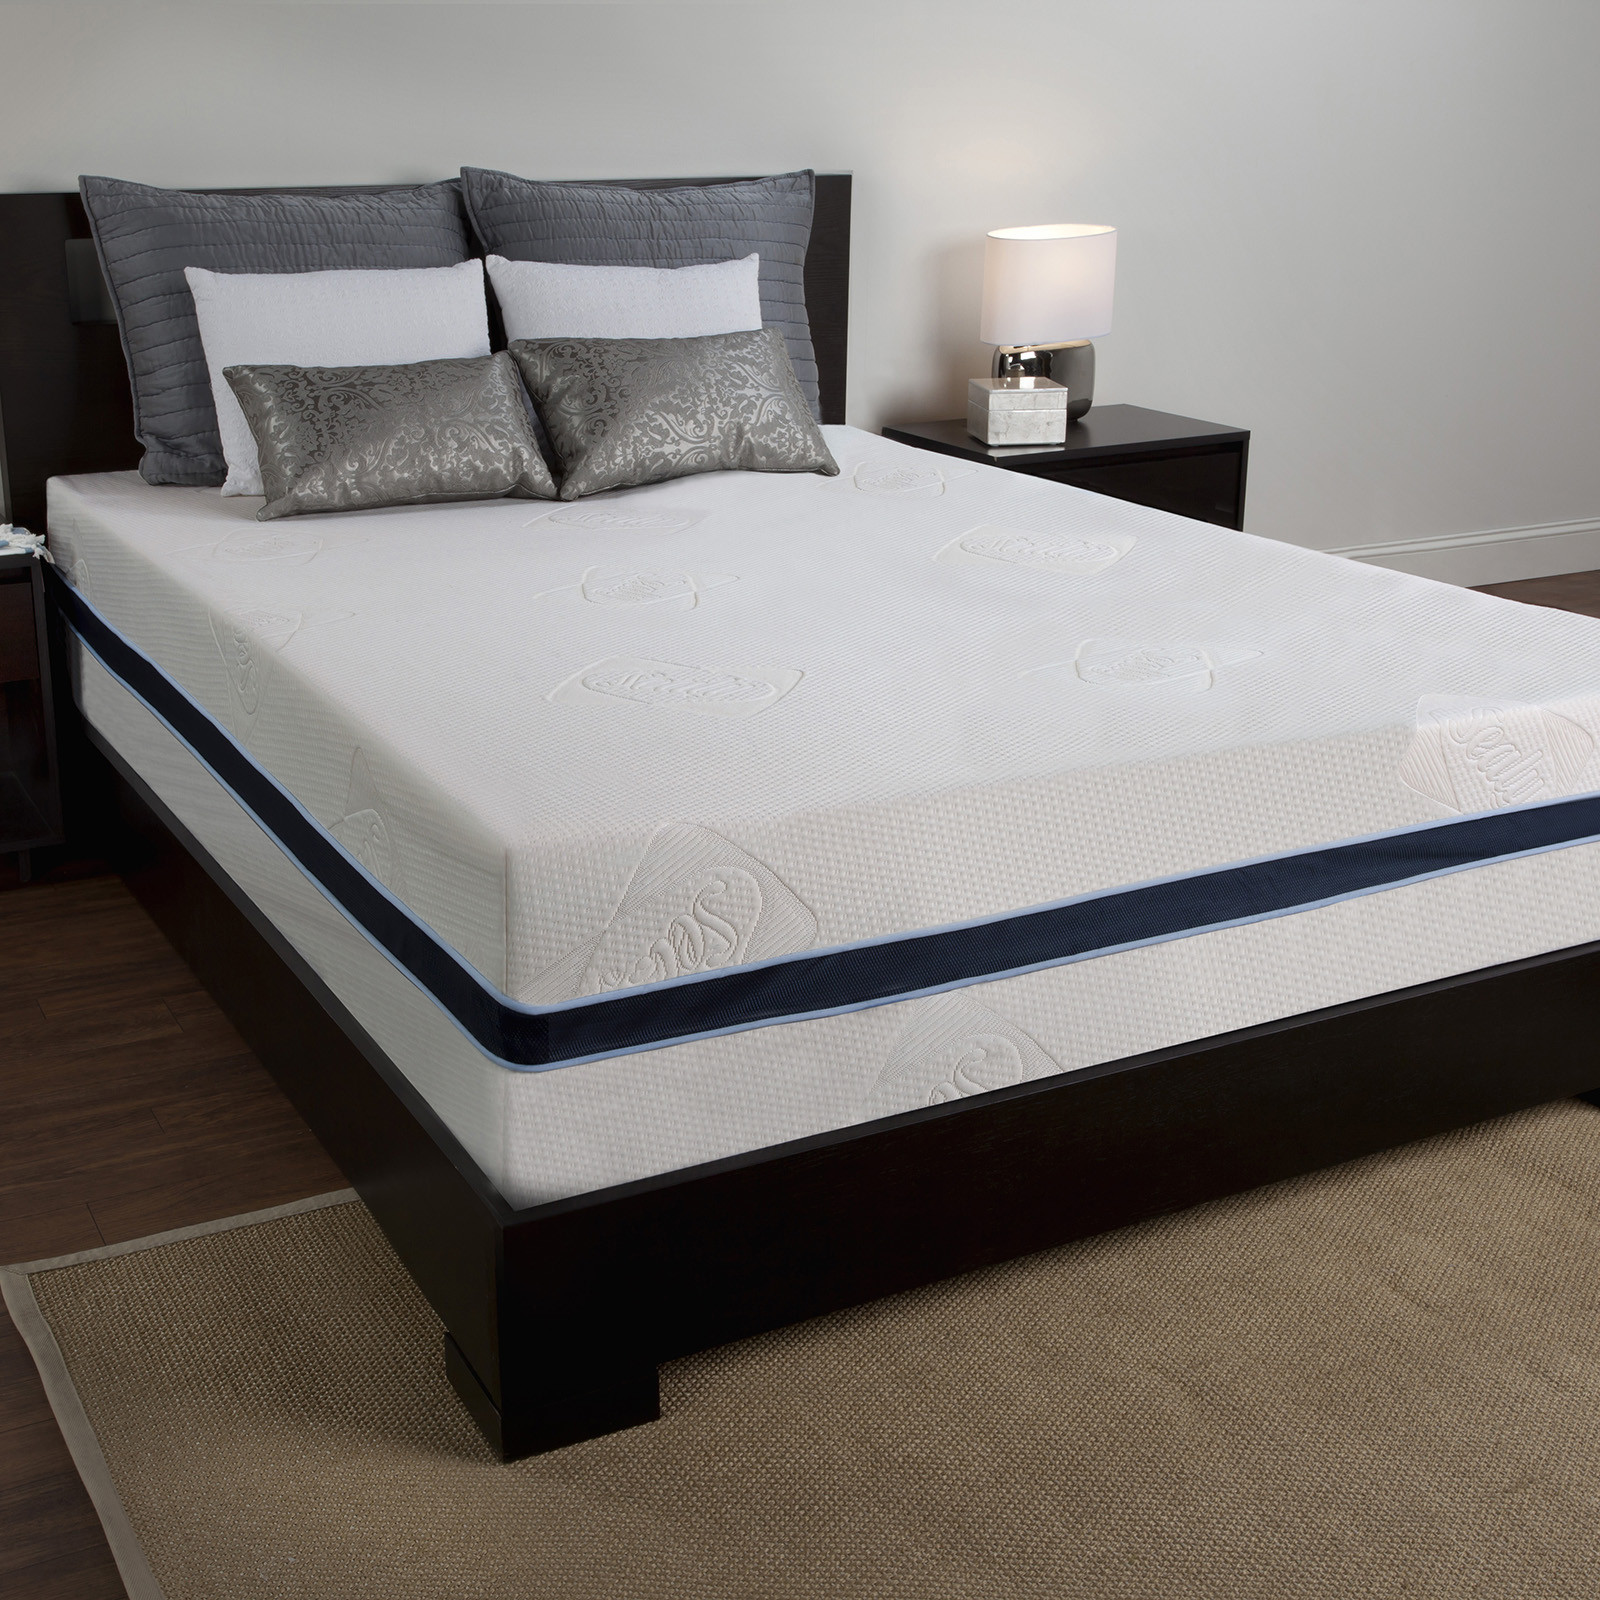 New King Size Memory Foam Mattress